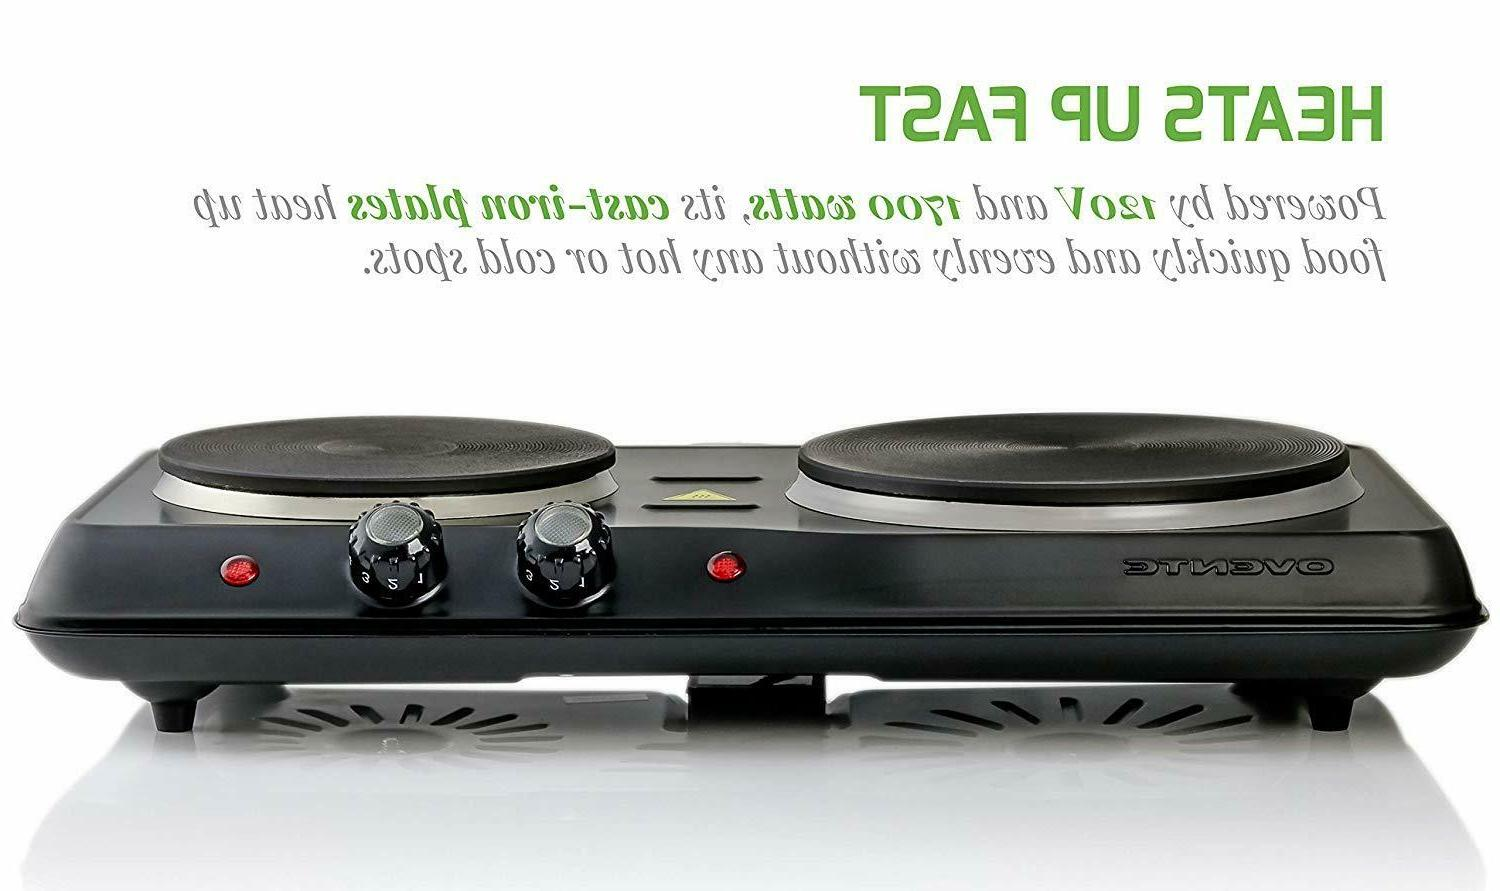 Electric Portable Cooktop Stove Hot Dual Burner Compact NEW